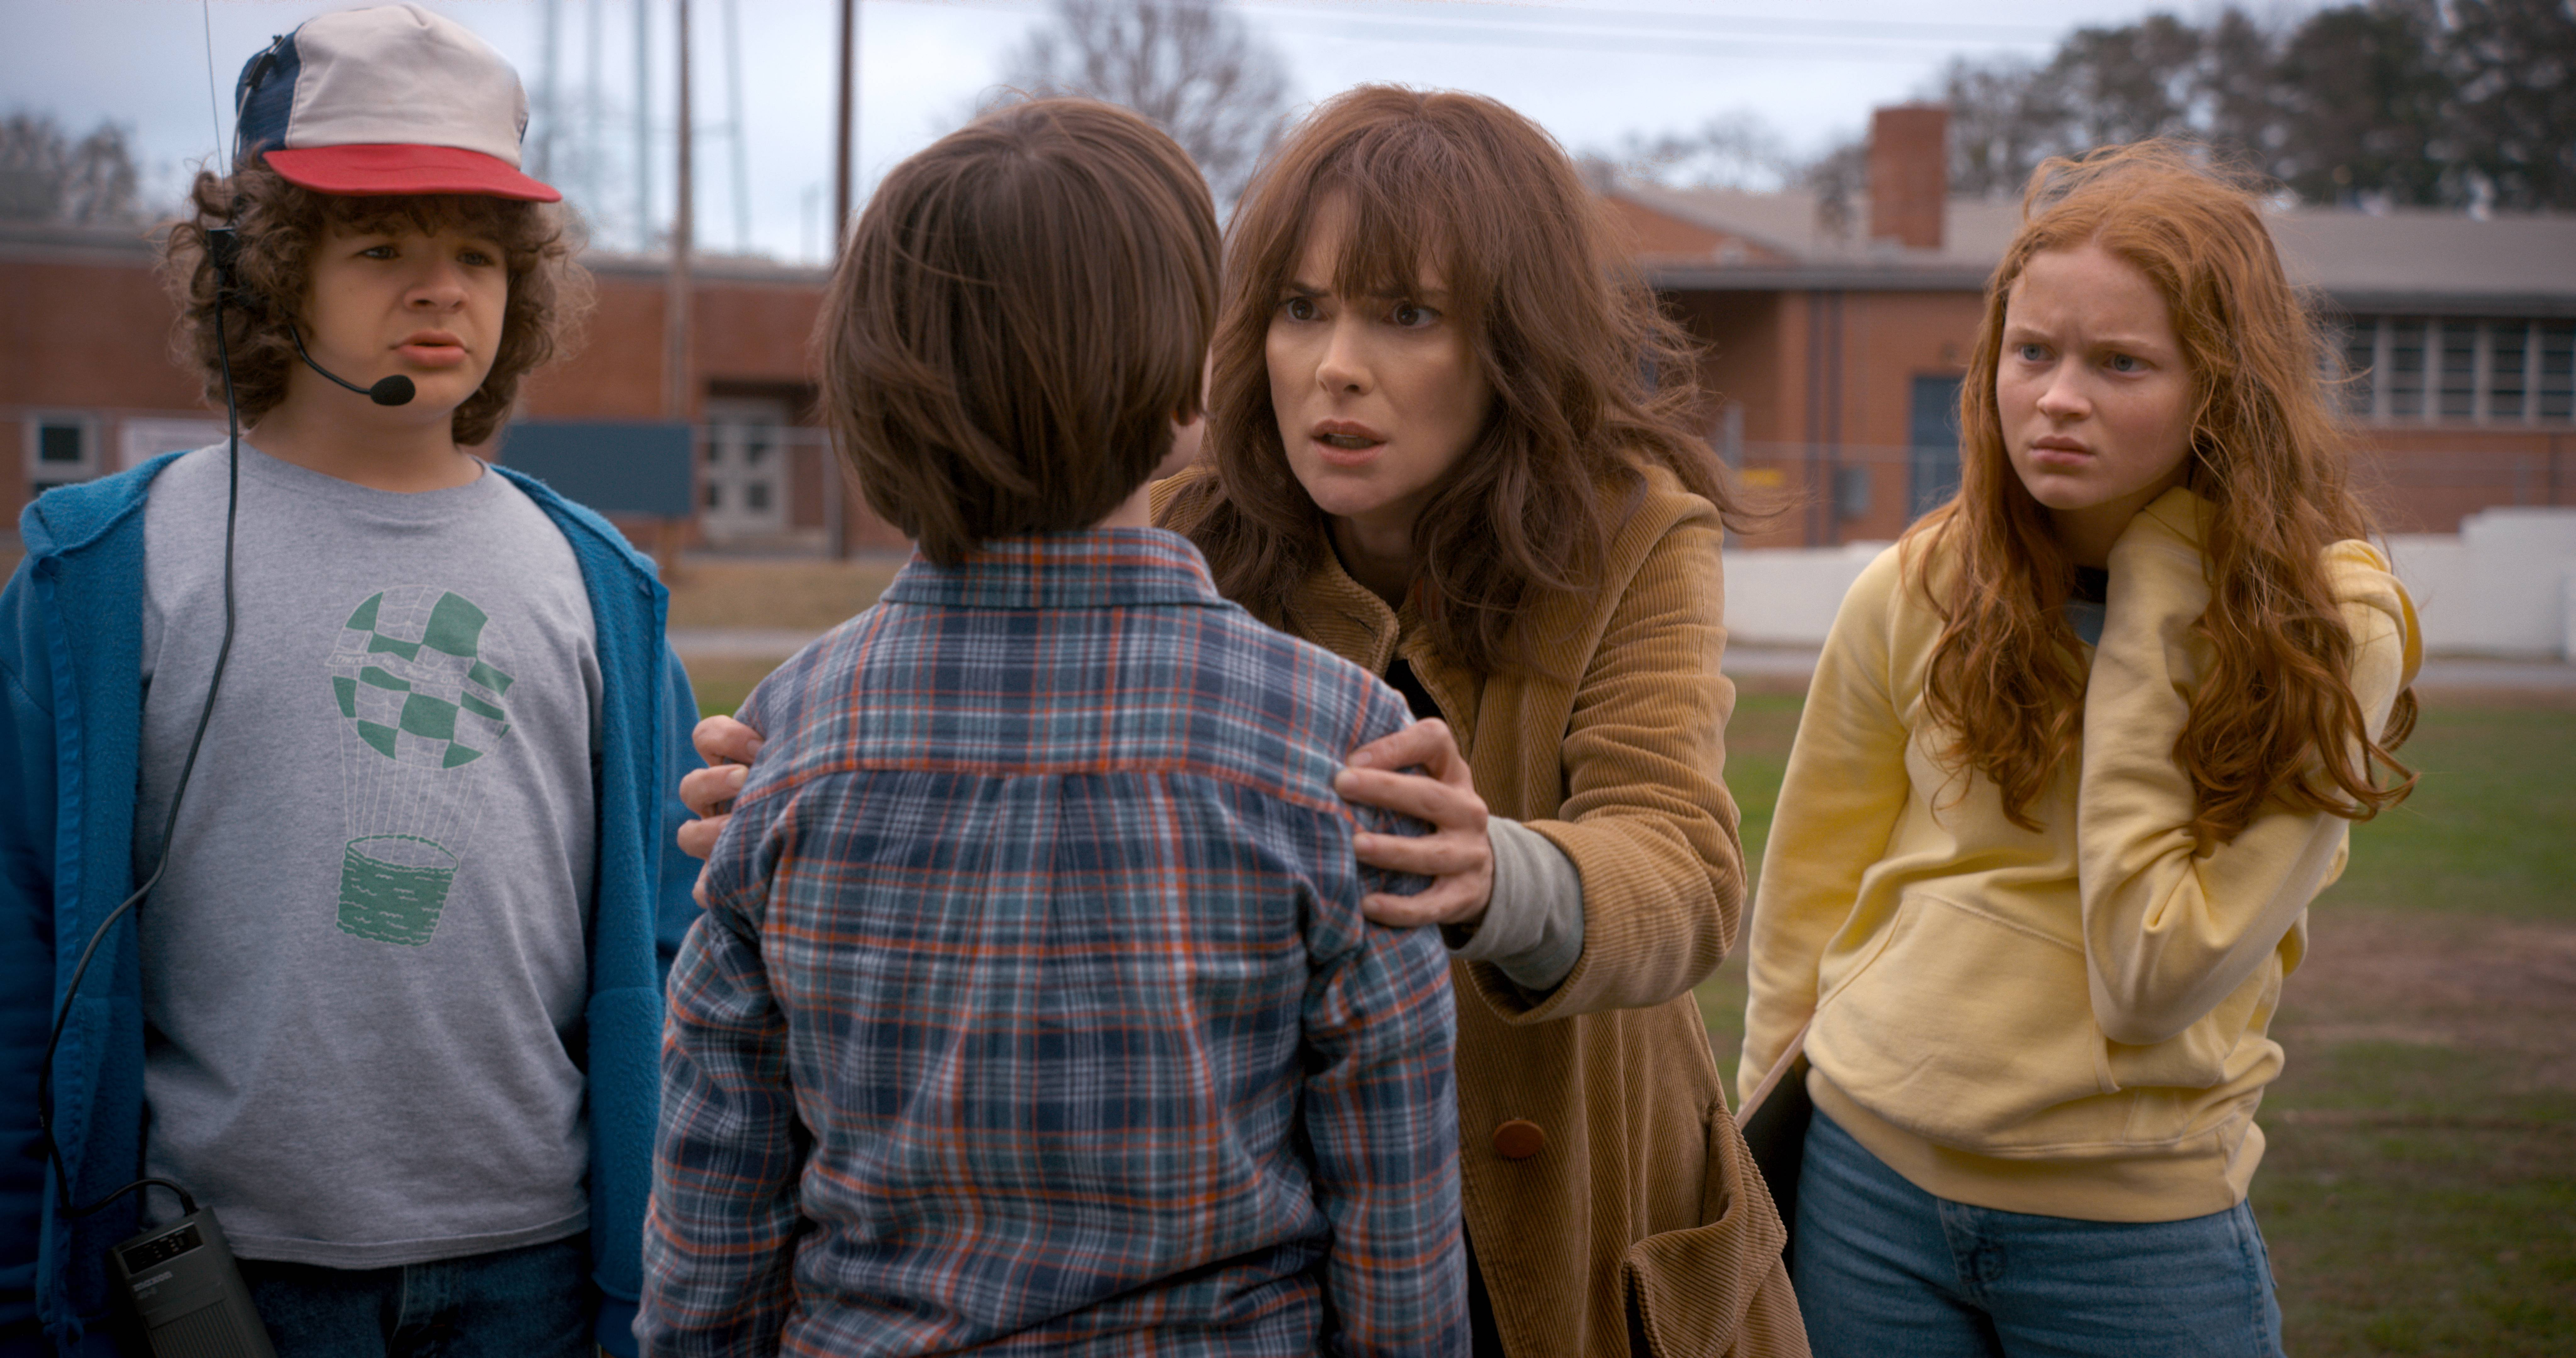 stranger-things-season-2-official-stills-001.jpg